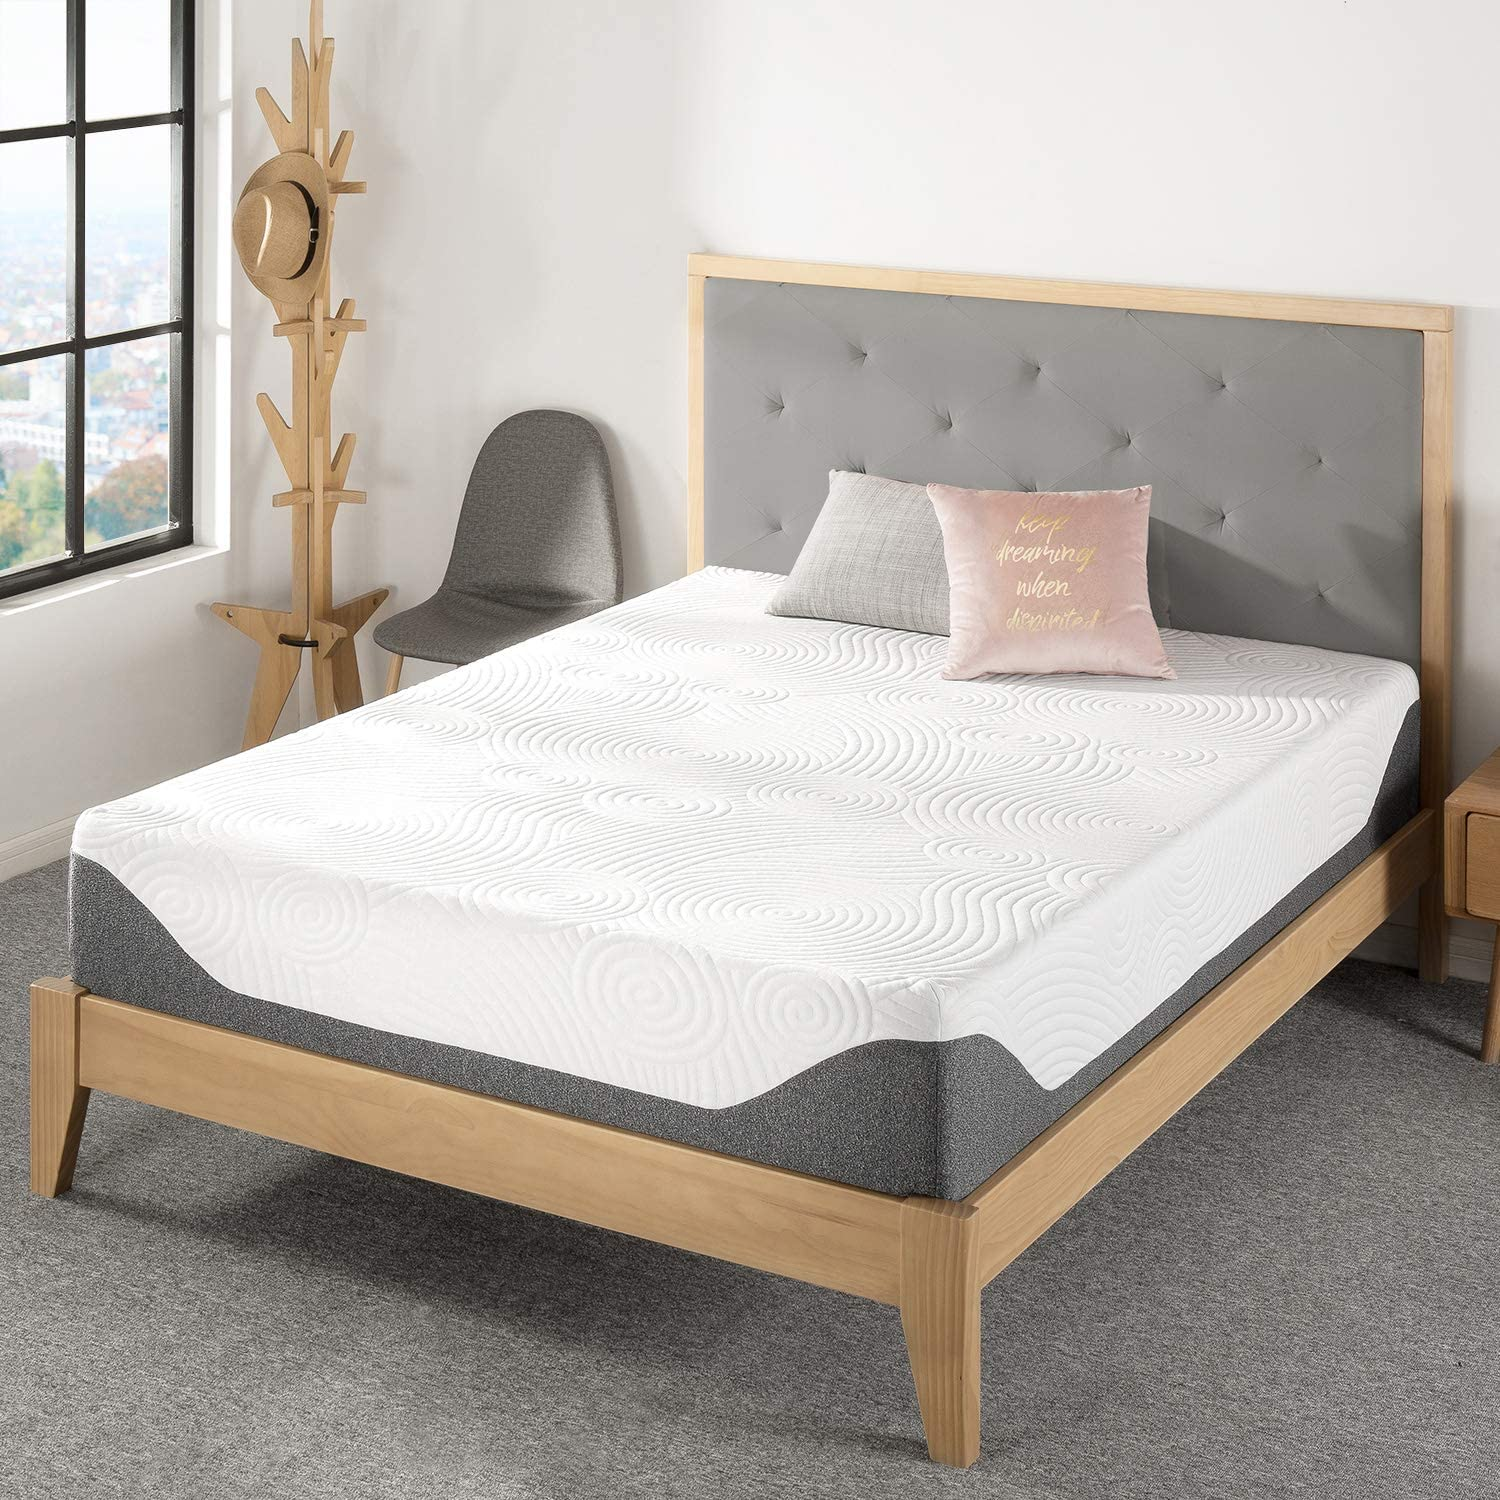 "Best Price Mattress 12"" Premium Memory Foam Mattress, Twin"